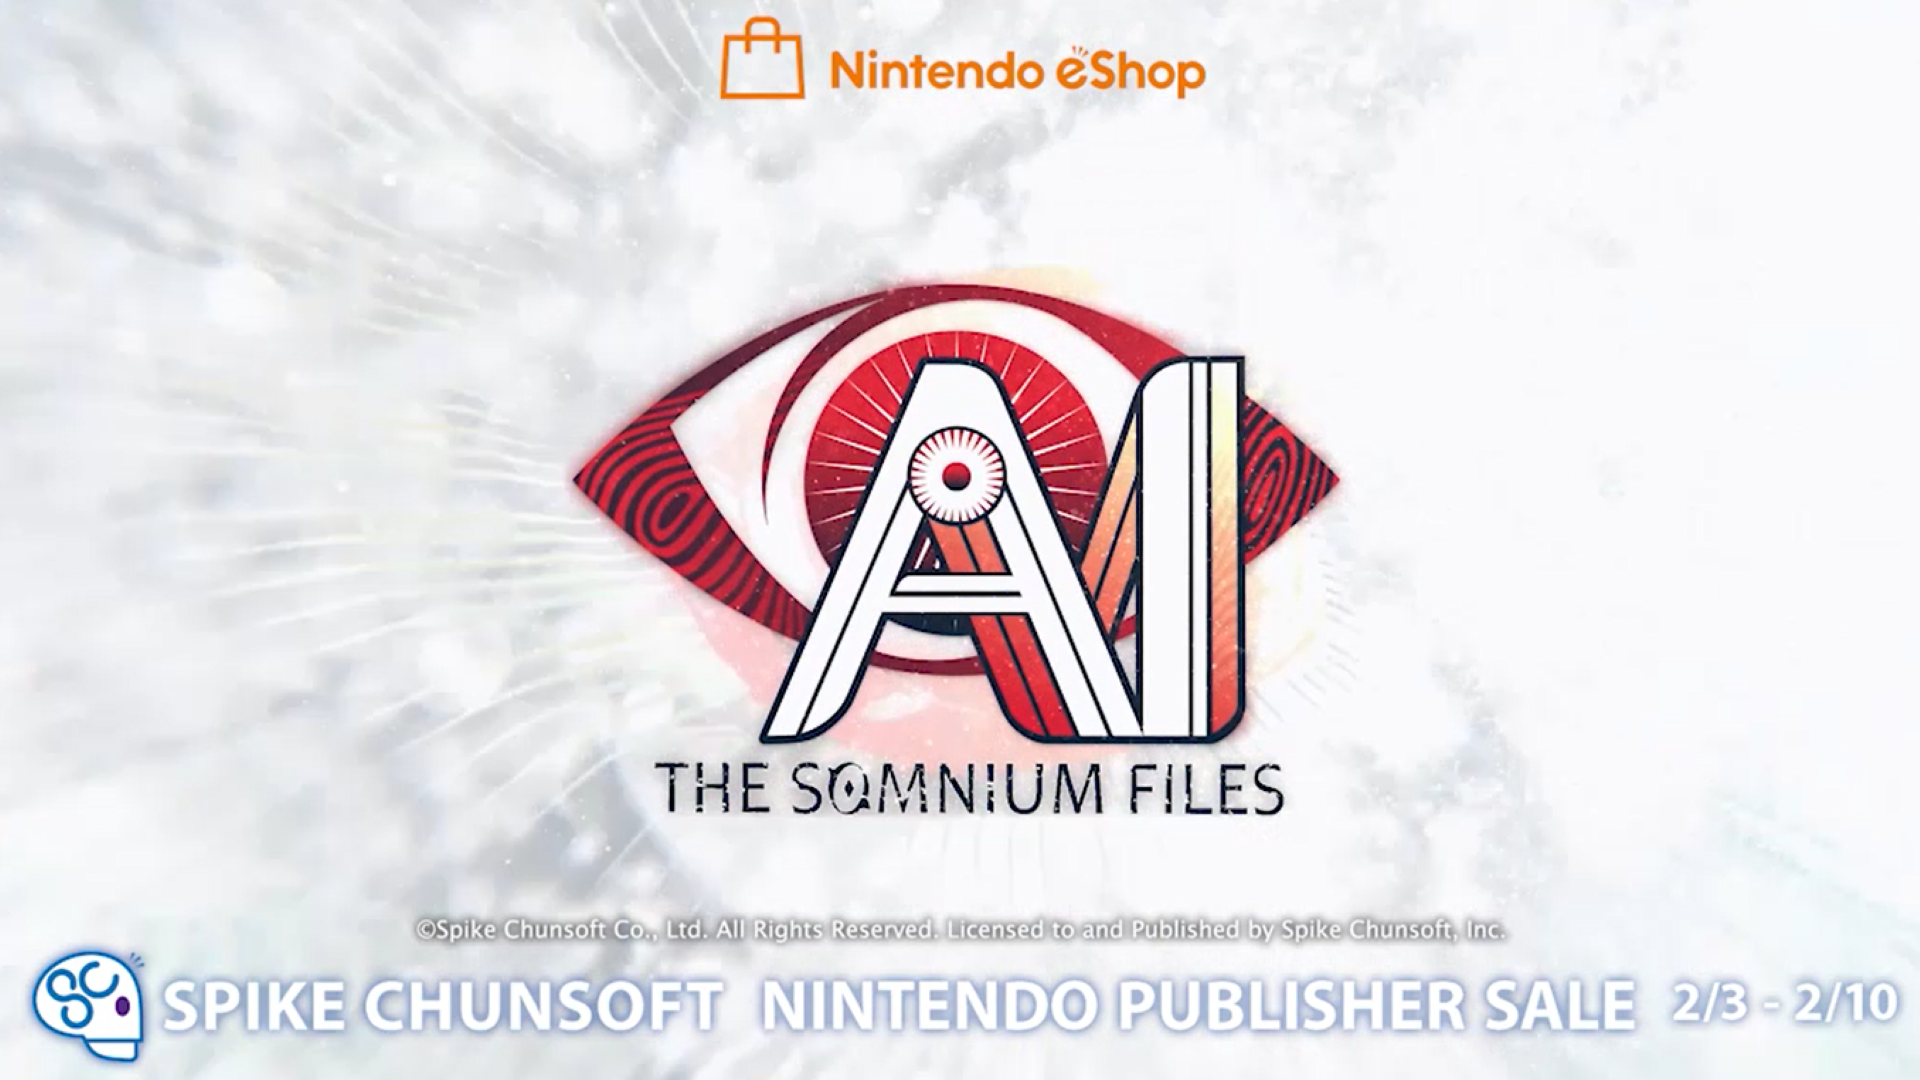 Spike Chunsoft Having Nintendo eShop Sale